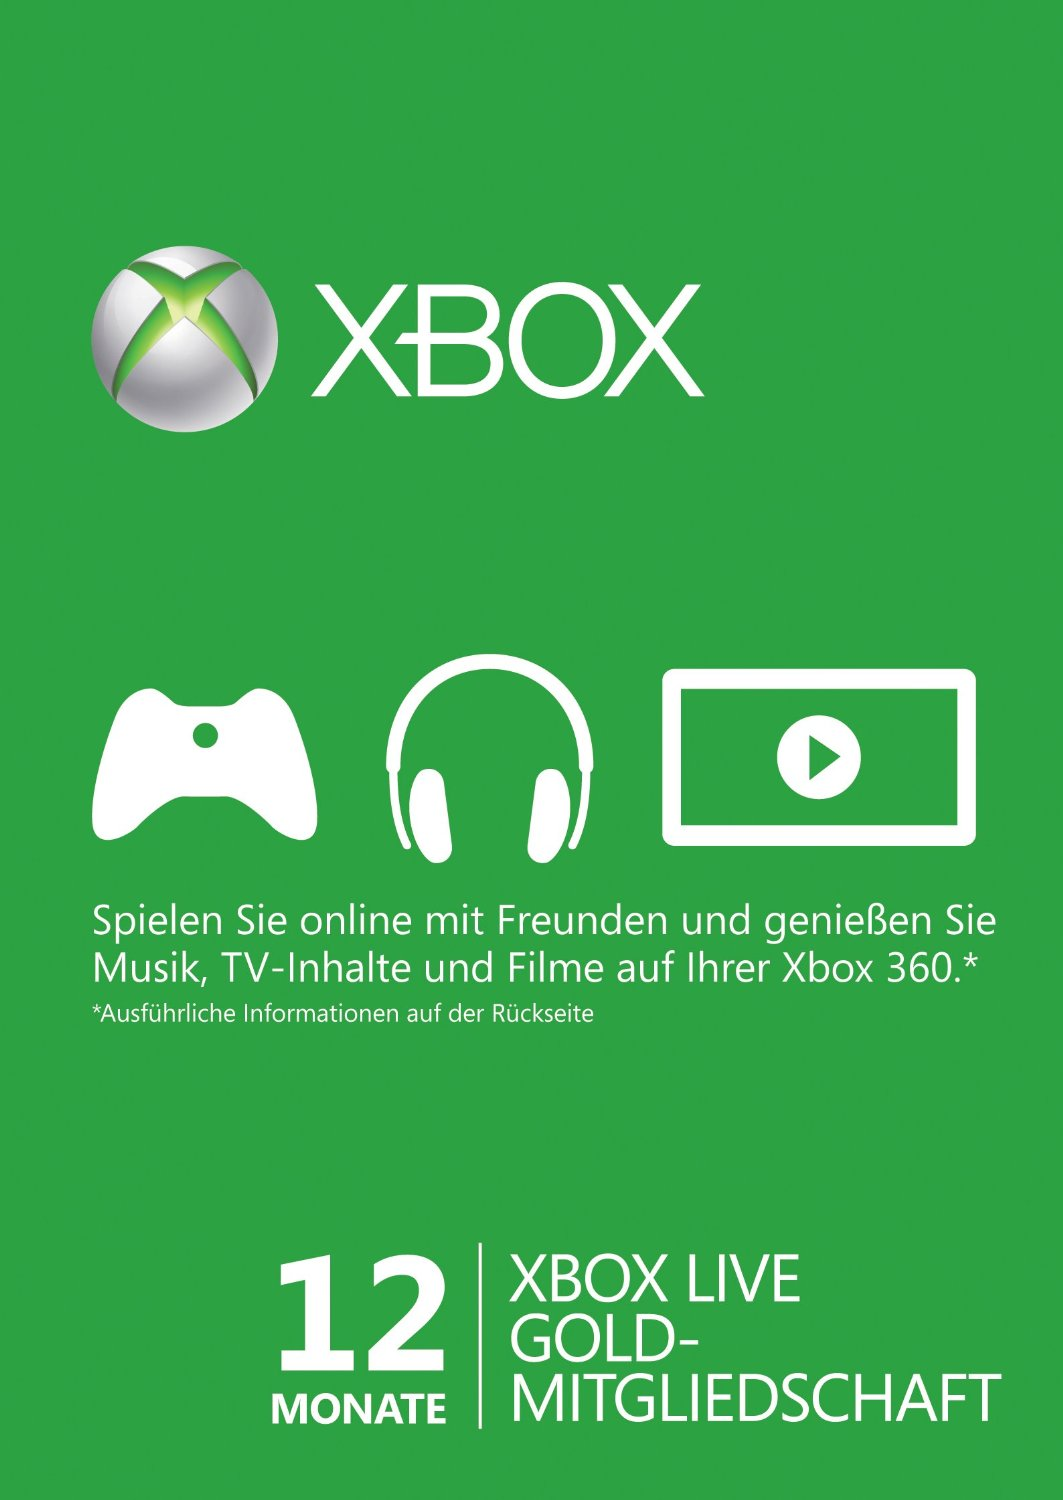 Xbox live gold 12 month membership card xbox 360 and xbox one digital